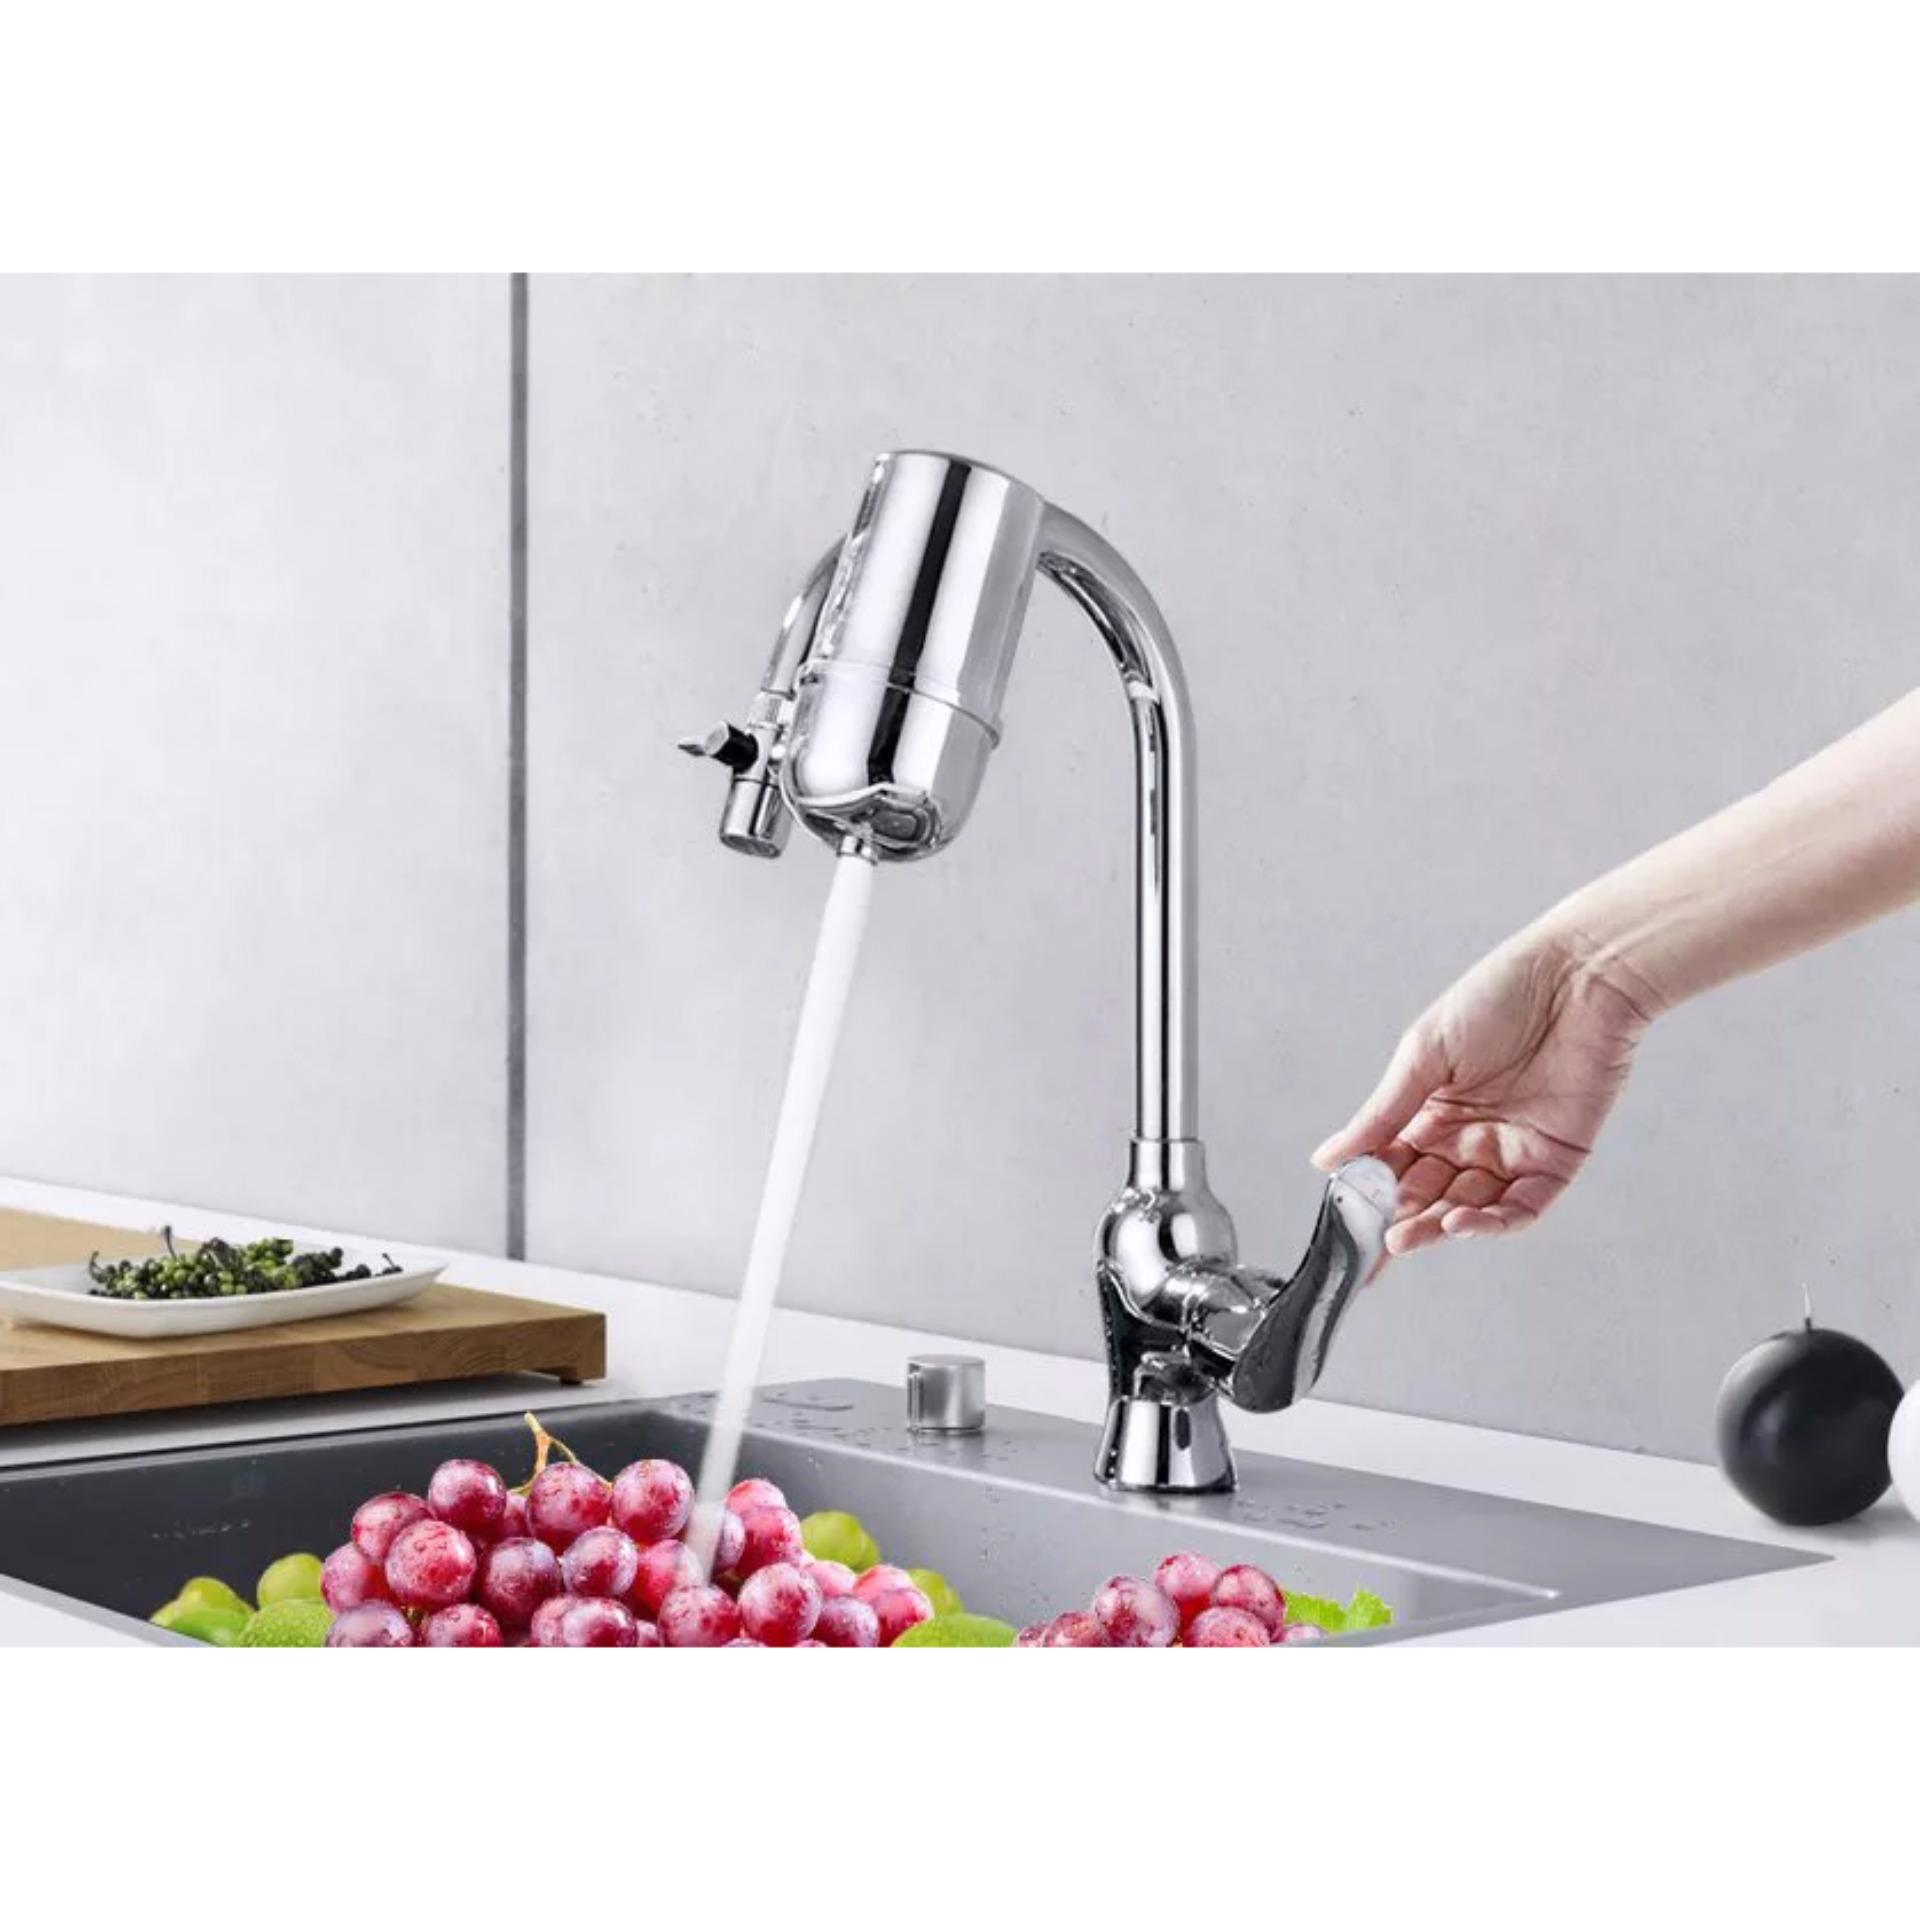 Modern Magic Water Faucet Sketch - Faucet Products - austinmartin.us